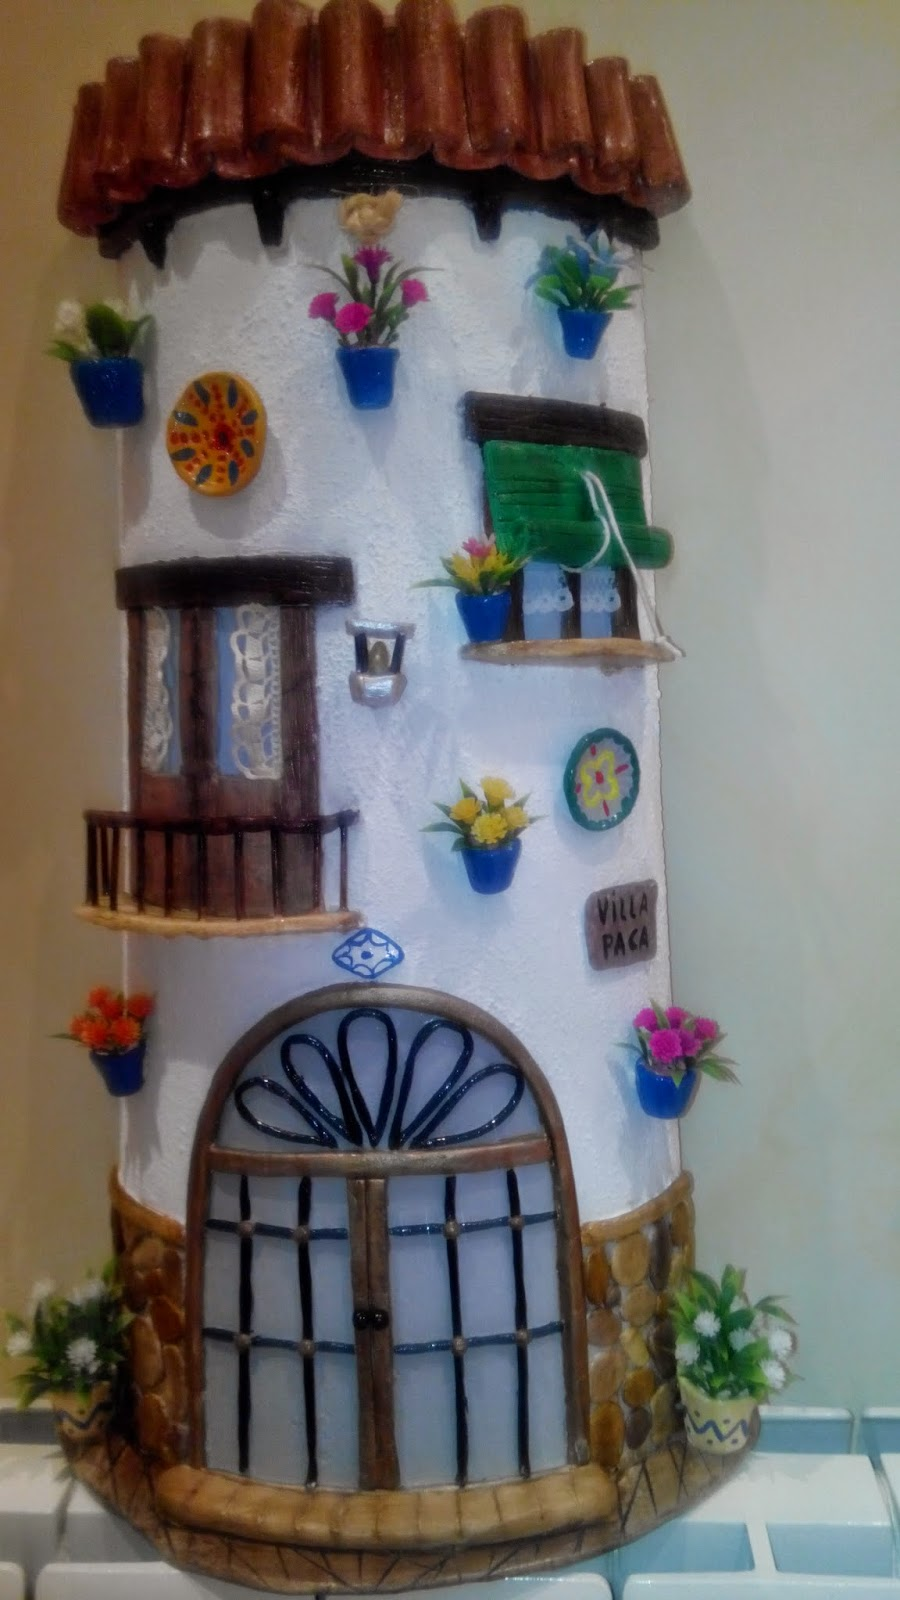 1200 best TEJAS DECORADAS images on Pinterest | Clay houses, Roof ...